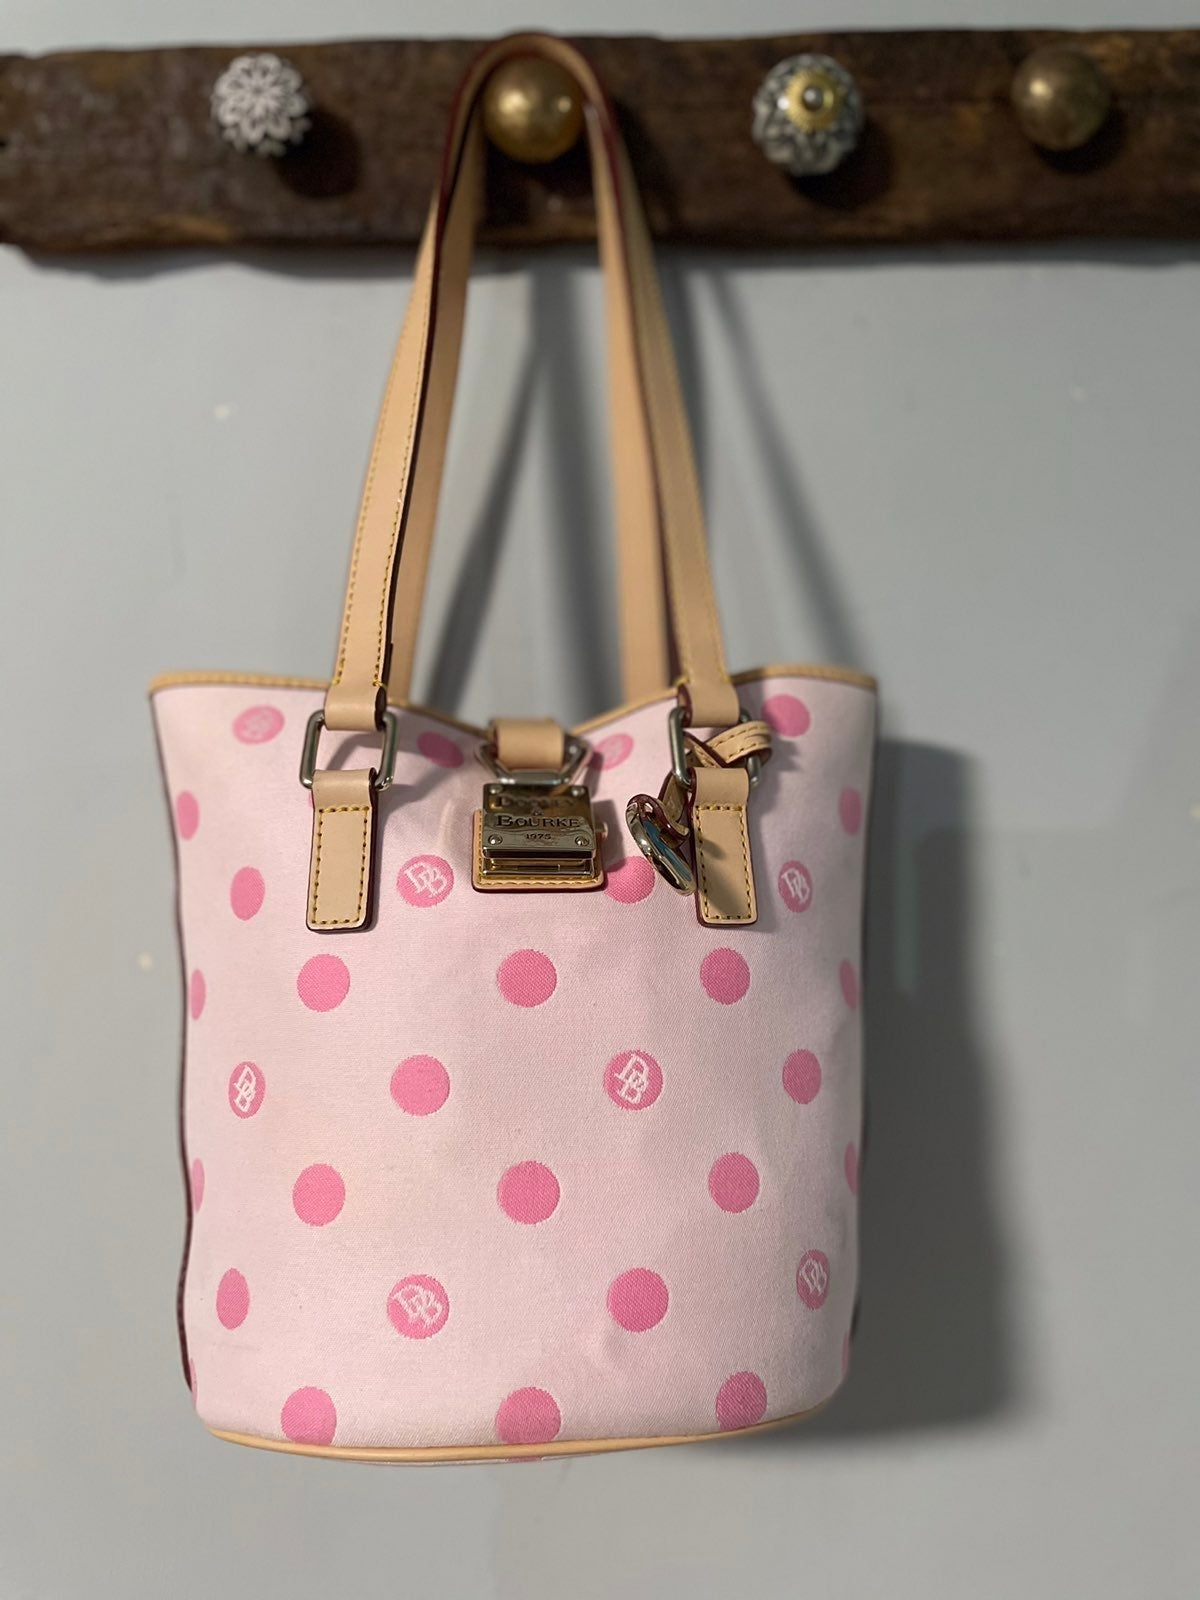 Dooney & Bourke polka dot bucket bag tot